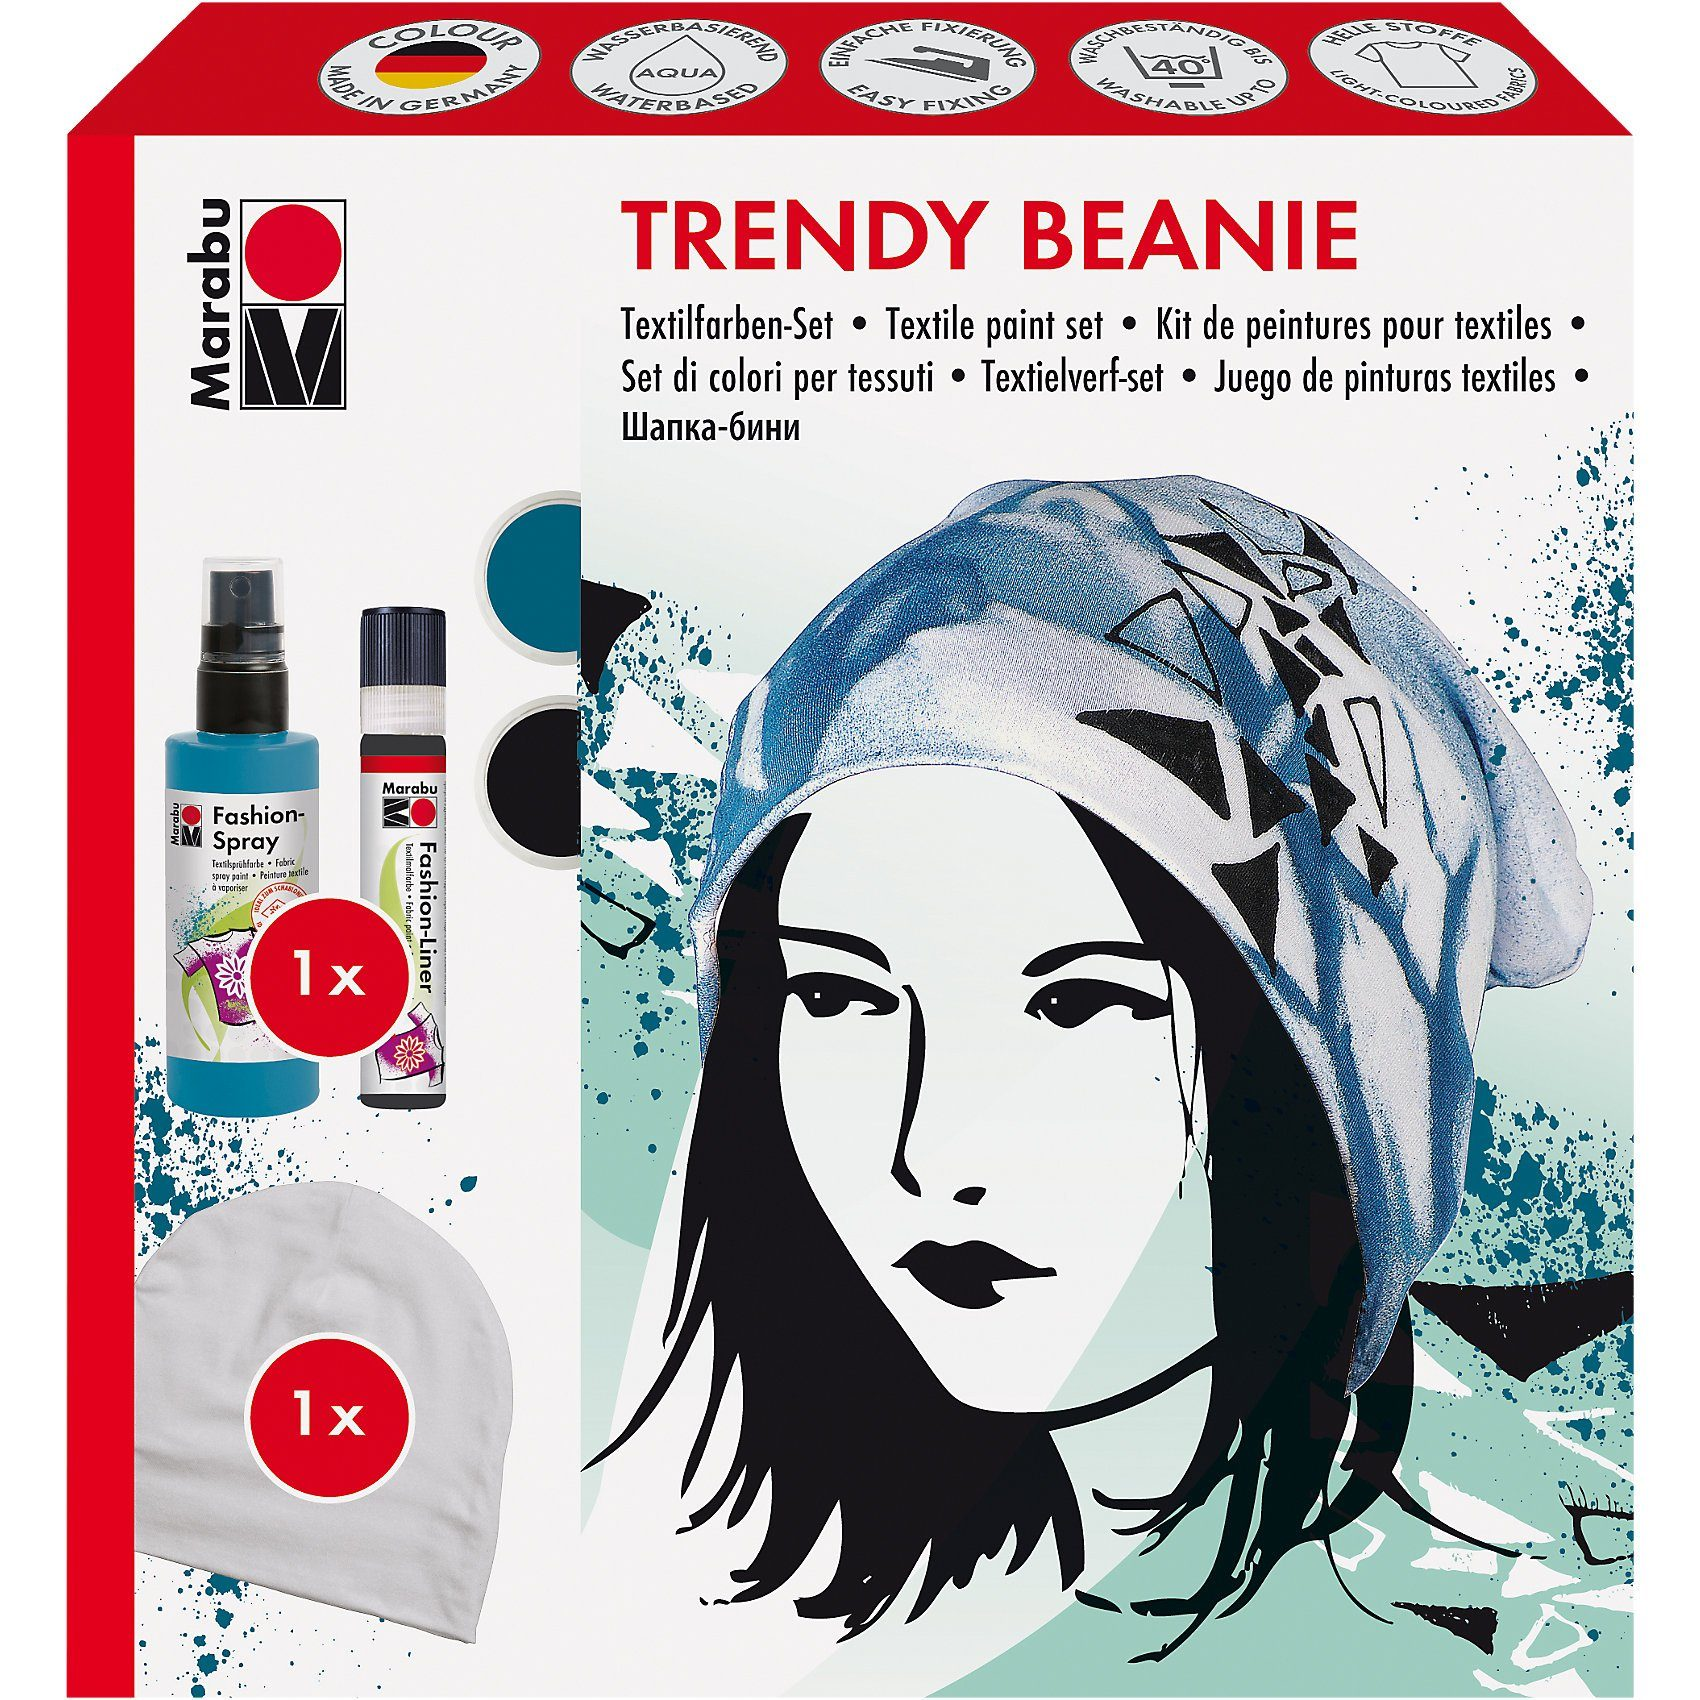 Marabu Fashion-Spray Trendy Beanie Textilfarben-Set, 3-tlg.